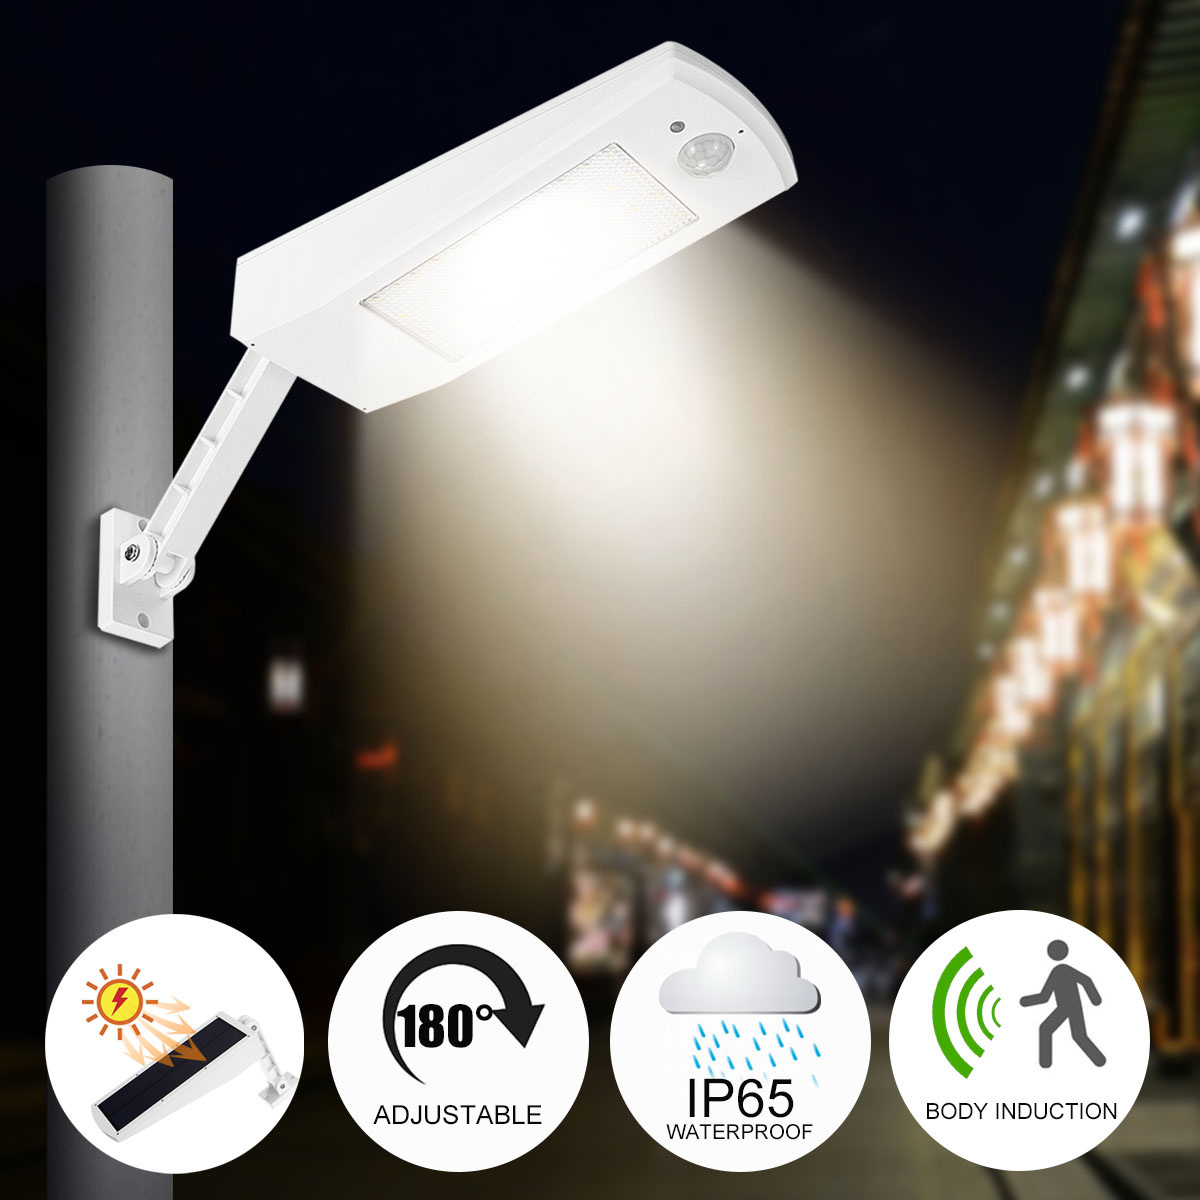 LED Wall Street Light Waterproof Motion Sensor Solar Power Outdoor Garden Lamp Induction/Micro-mode White/Warm White EmergencyLED Wall Street Light Waterproof Motion Sensor Solar Power Outdoor Garden Lamp Induction/Micro-mode White/Warm White Emergency